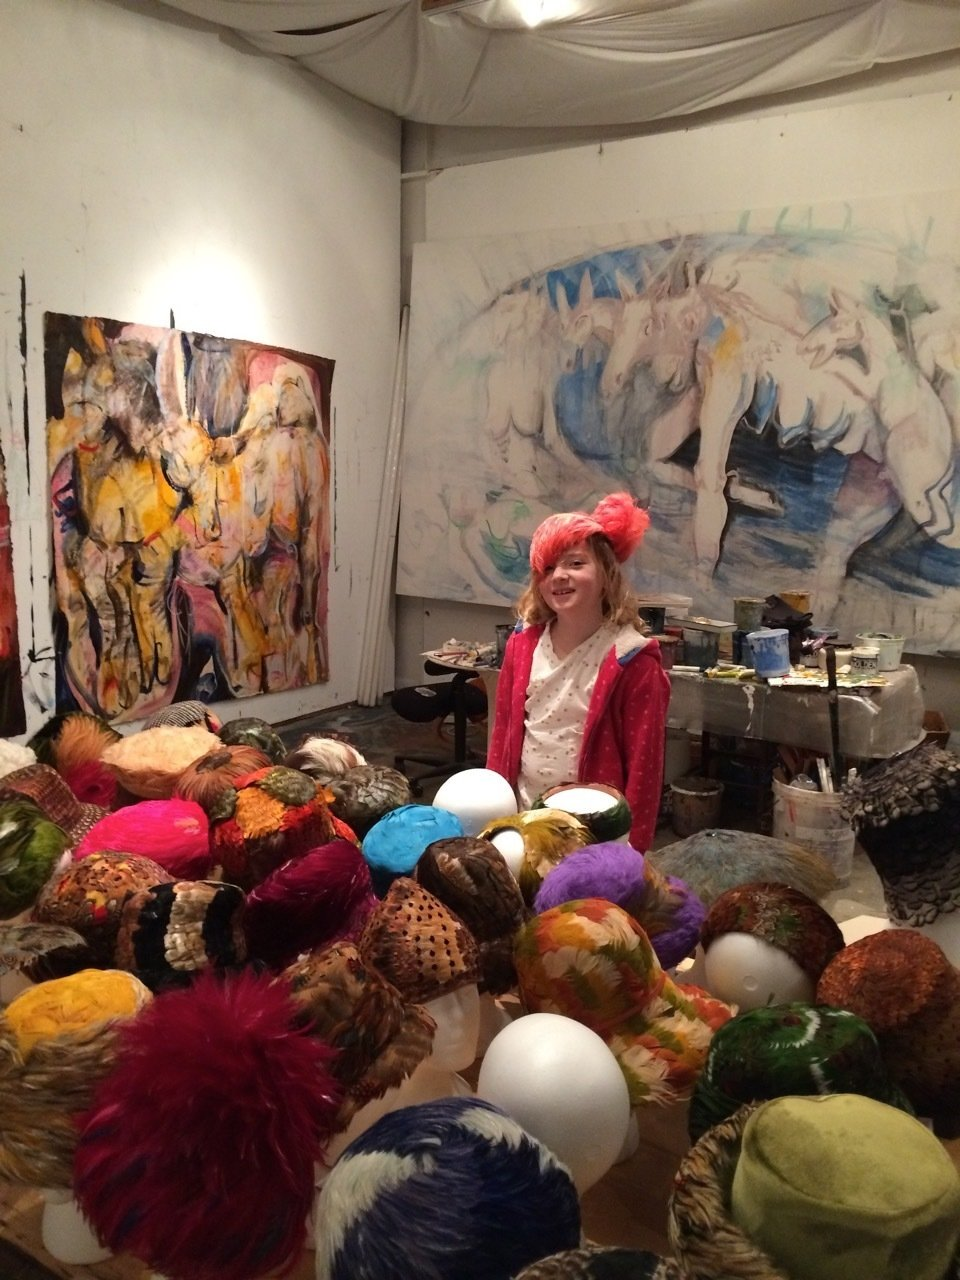 painting vintage Dior hat collection in Madeleine's studio. mixed. visitor. whole range of makers. 50s to 70s.